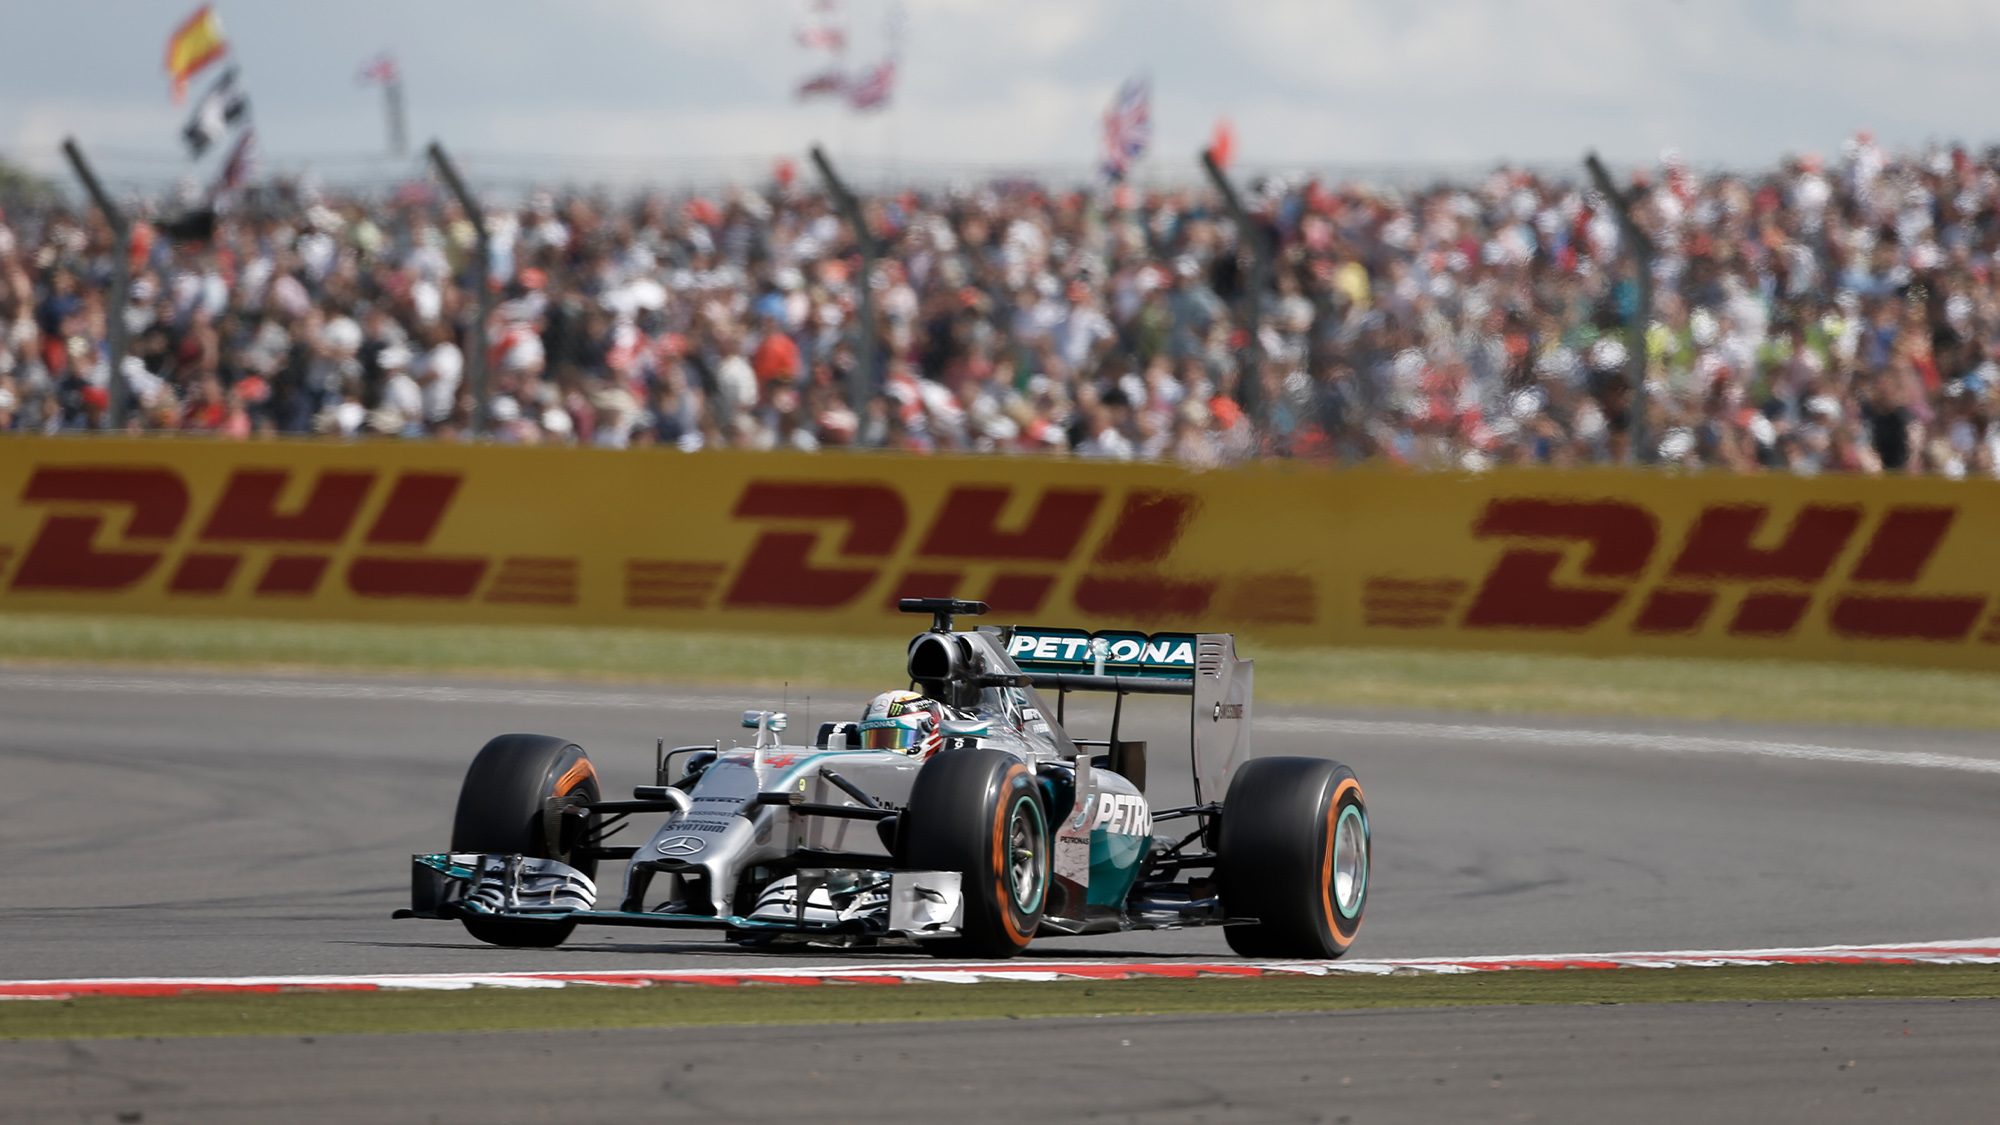 Lewis Hamilton on his way to victory in the 2014 British Grand Prix at SilverstoneFrancois Flamand / DPPI